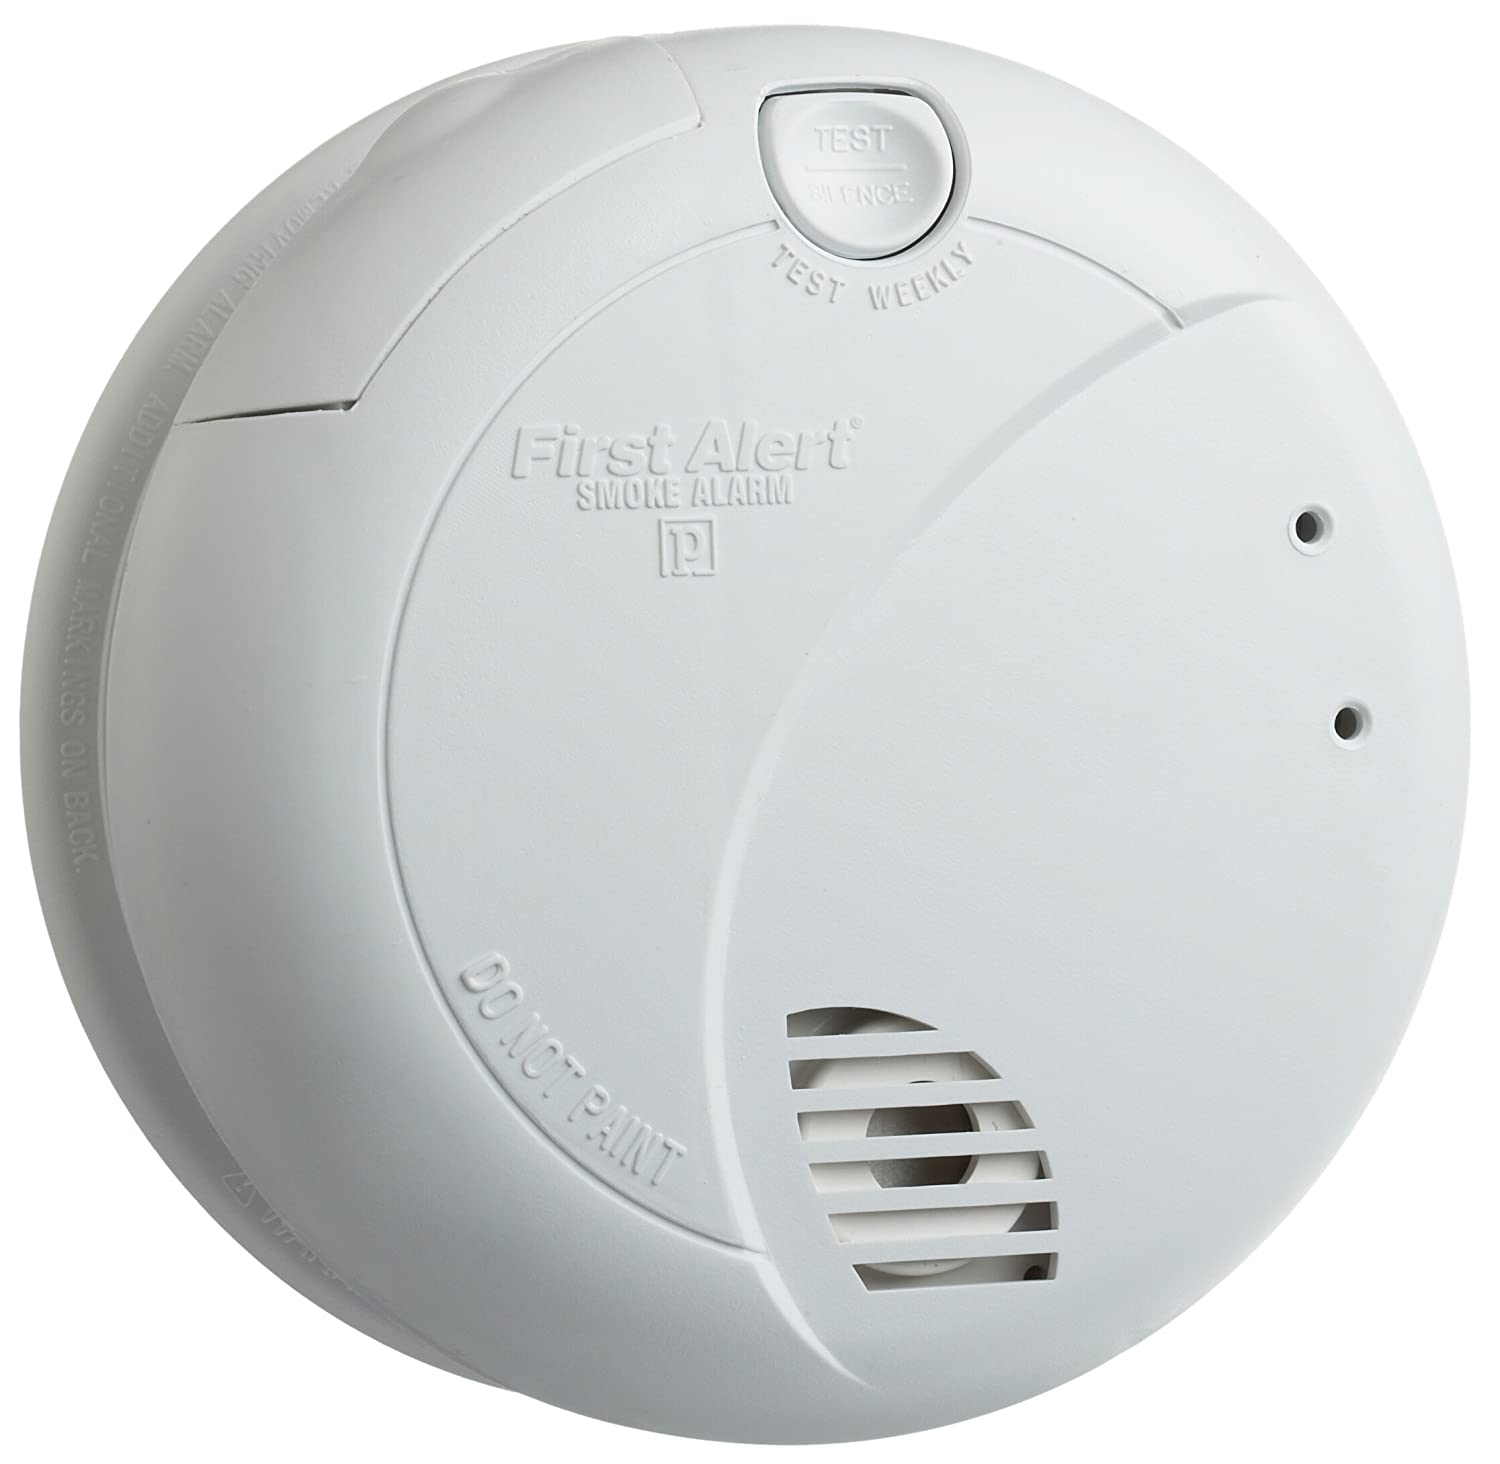 70 off first alert brk 7010 hardwire smoke alarm with photoelectric sensor. Black Bedroom Furniture Sets. Home Design Ideas